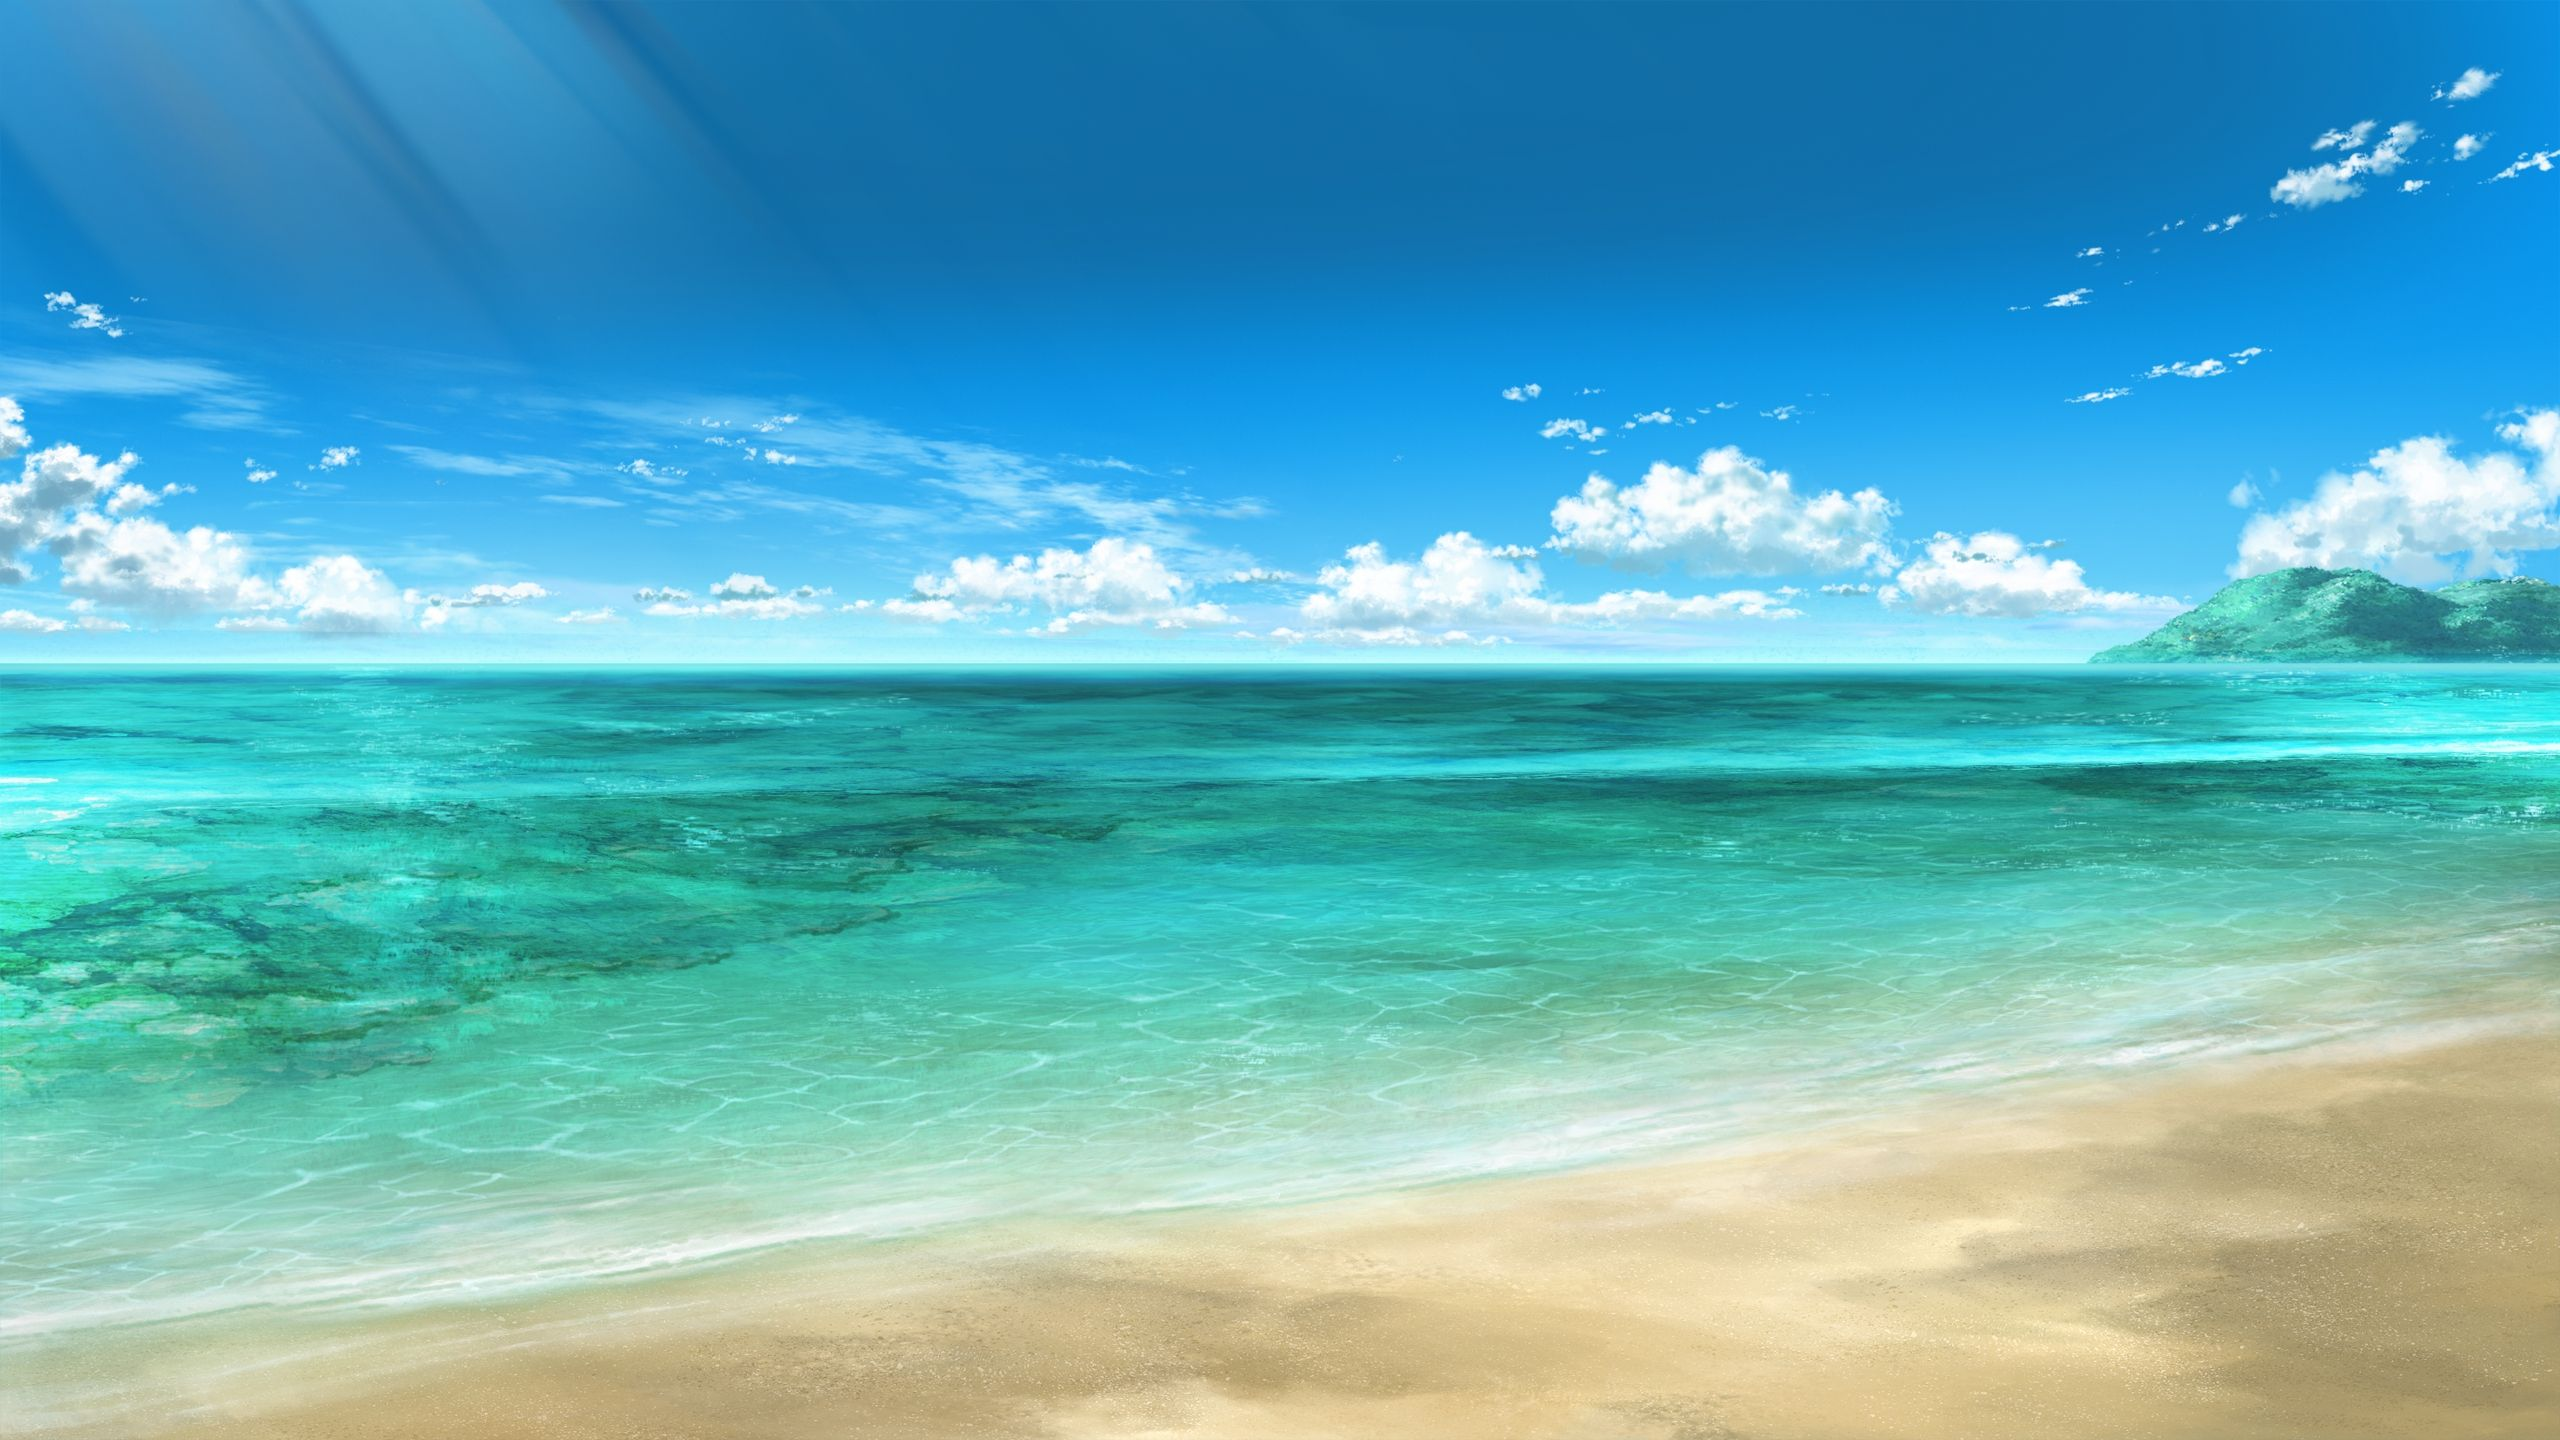 Tropical Ocean 3d Live Wallpaper Seaside Desktop Background Wallpaper Free Travel